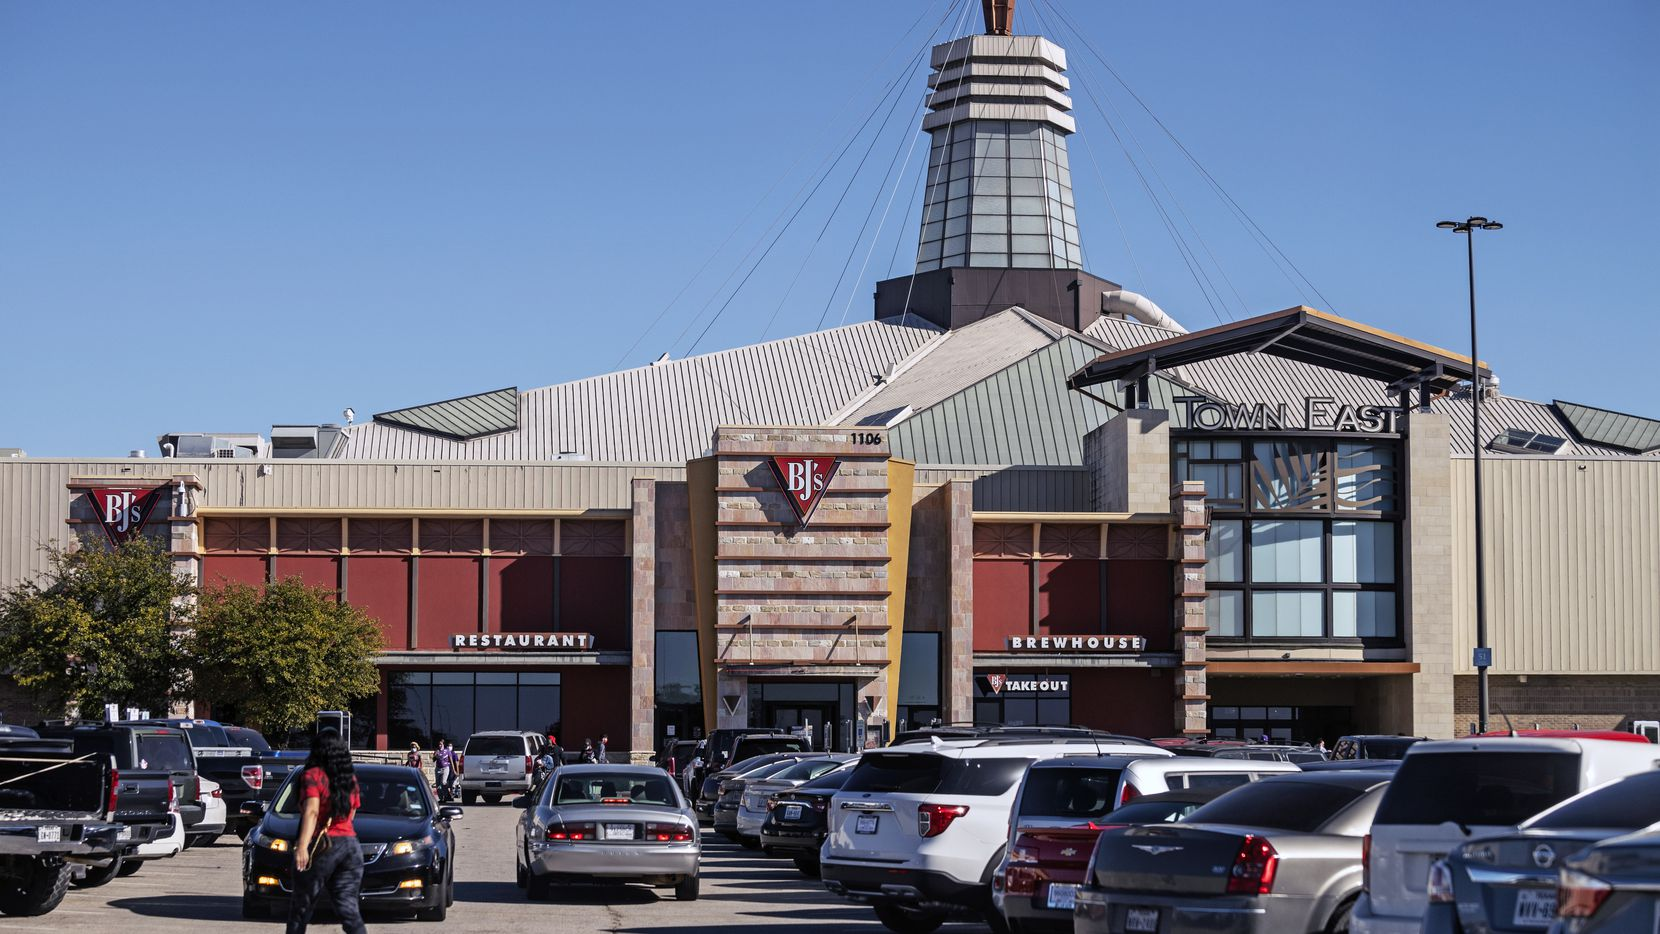 The main entrance to Town East Mall in Mesquite.